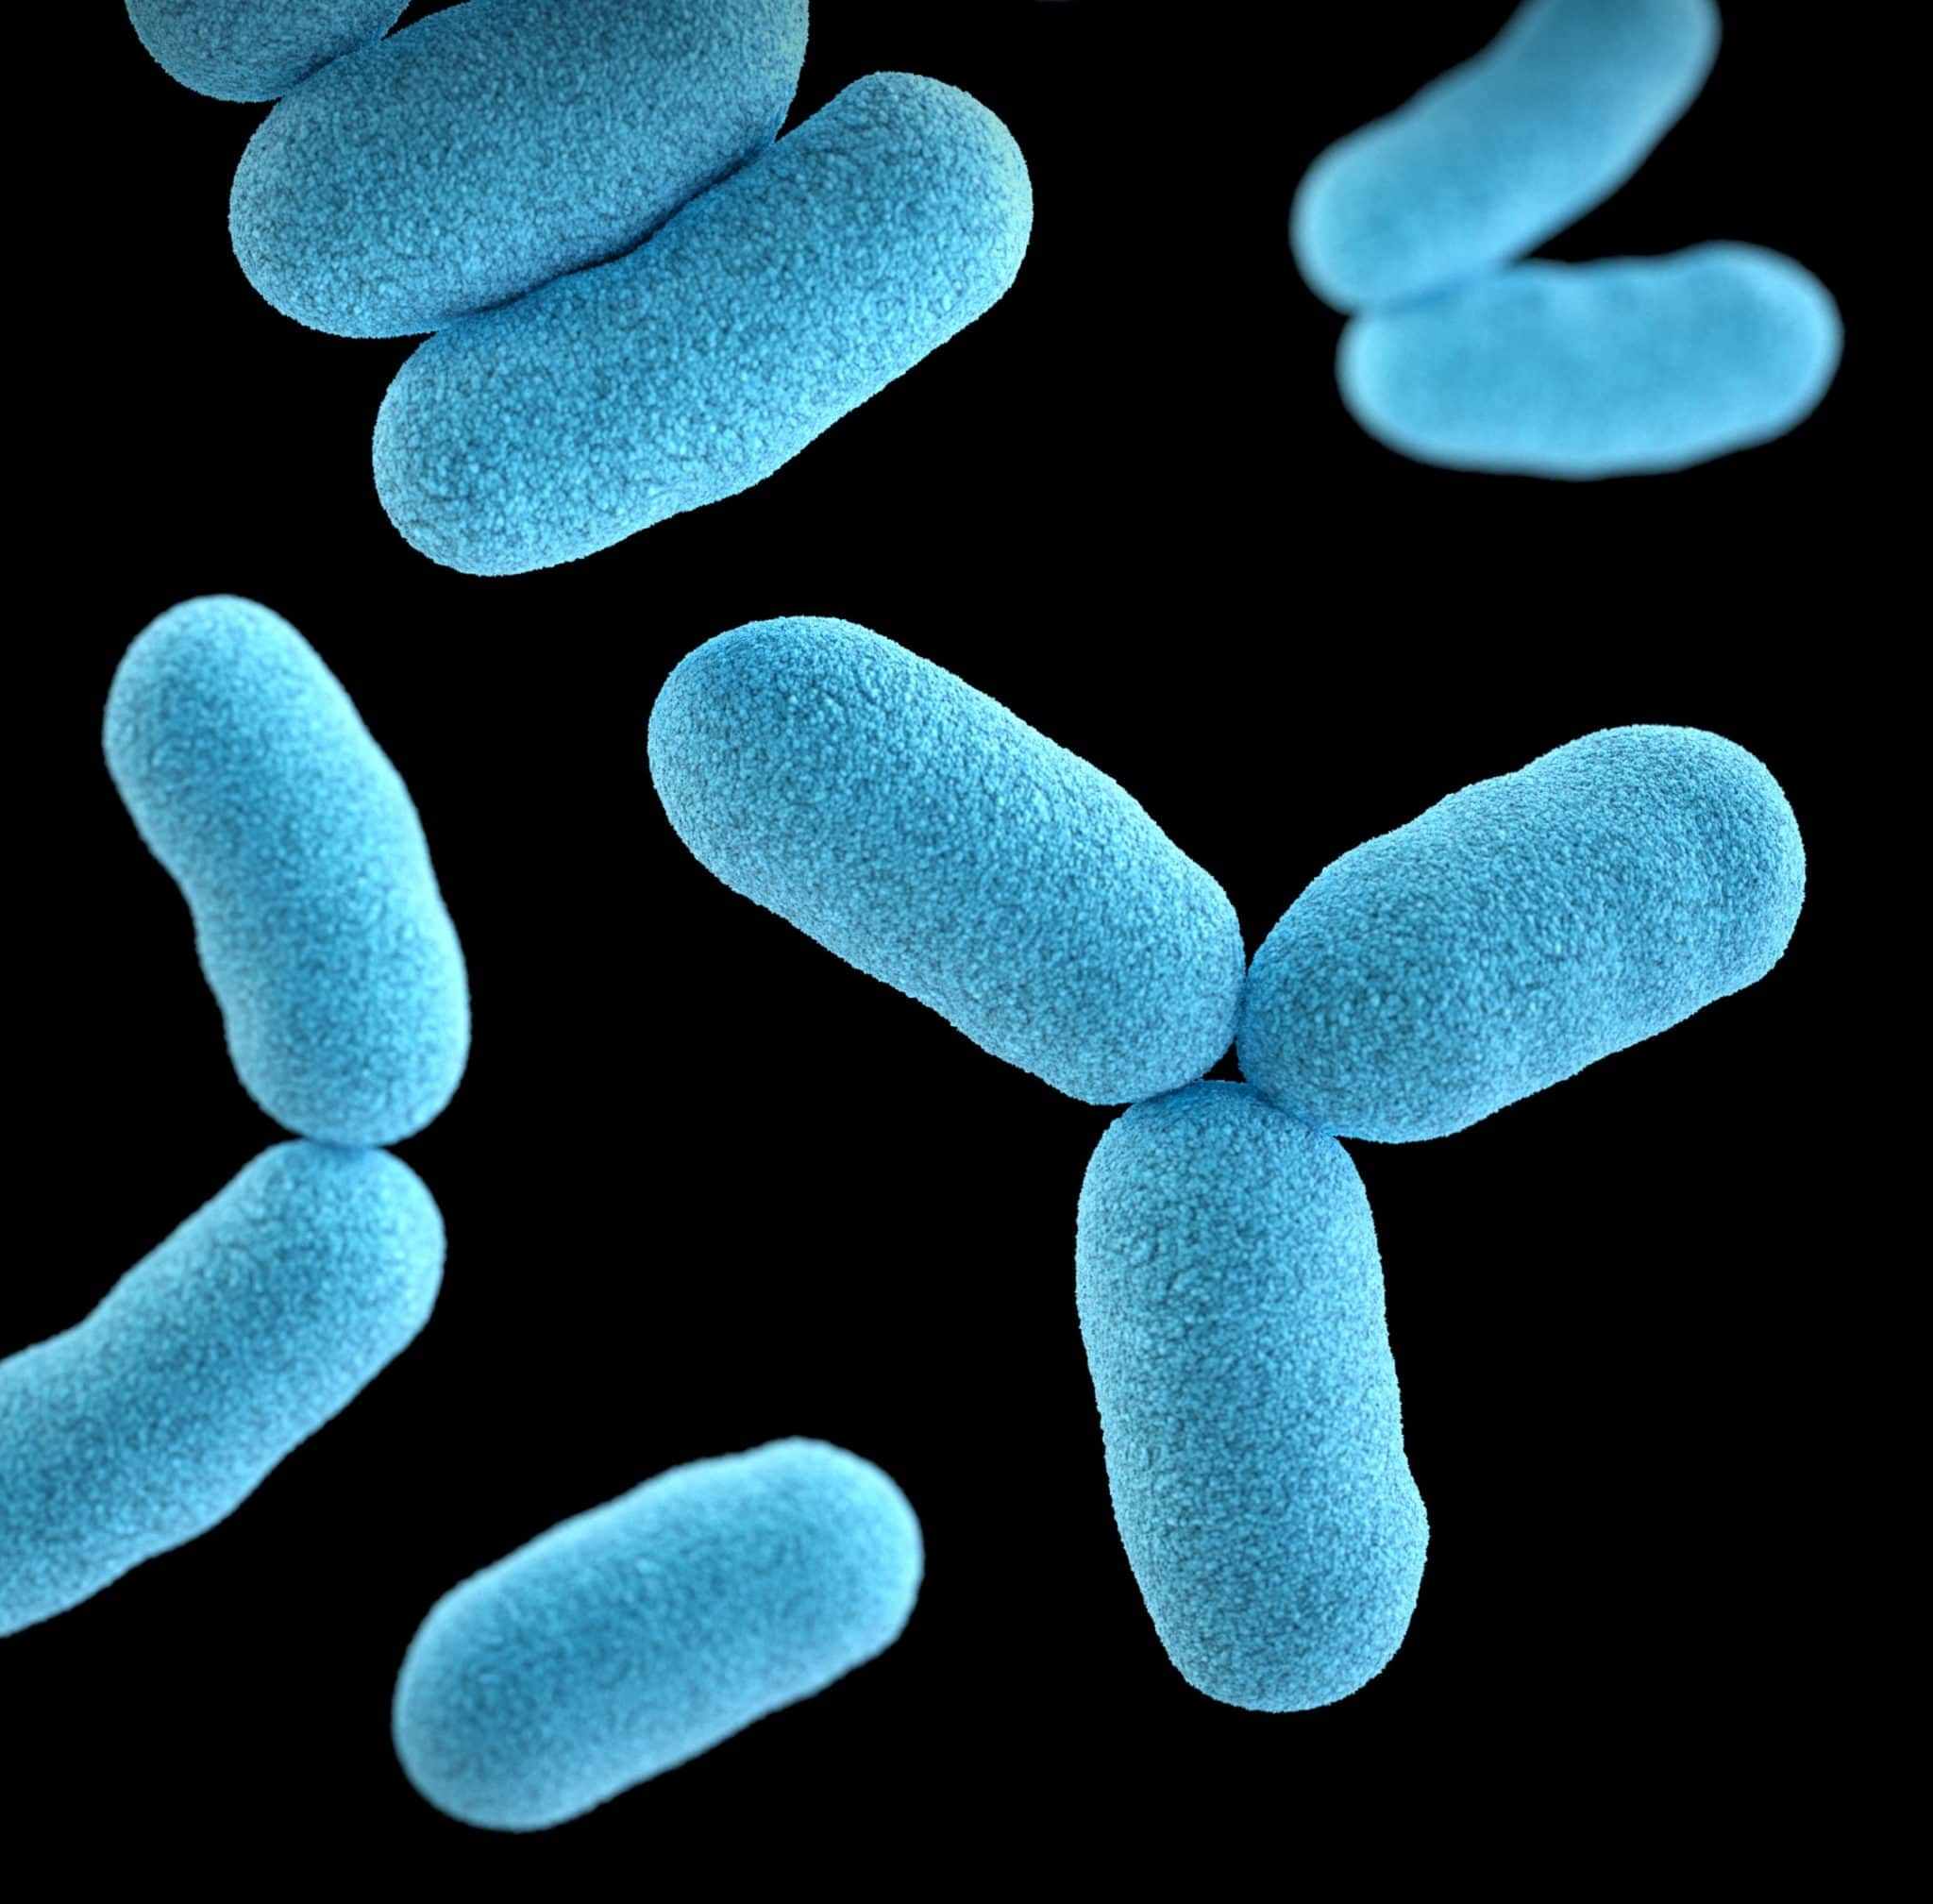 close up of blue gut bacteria against a black background